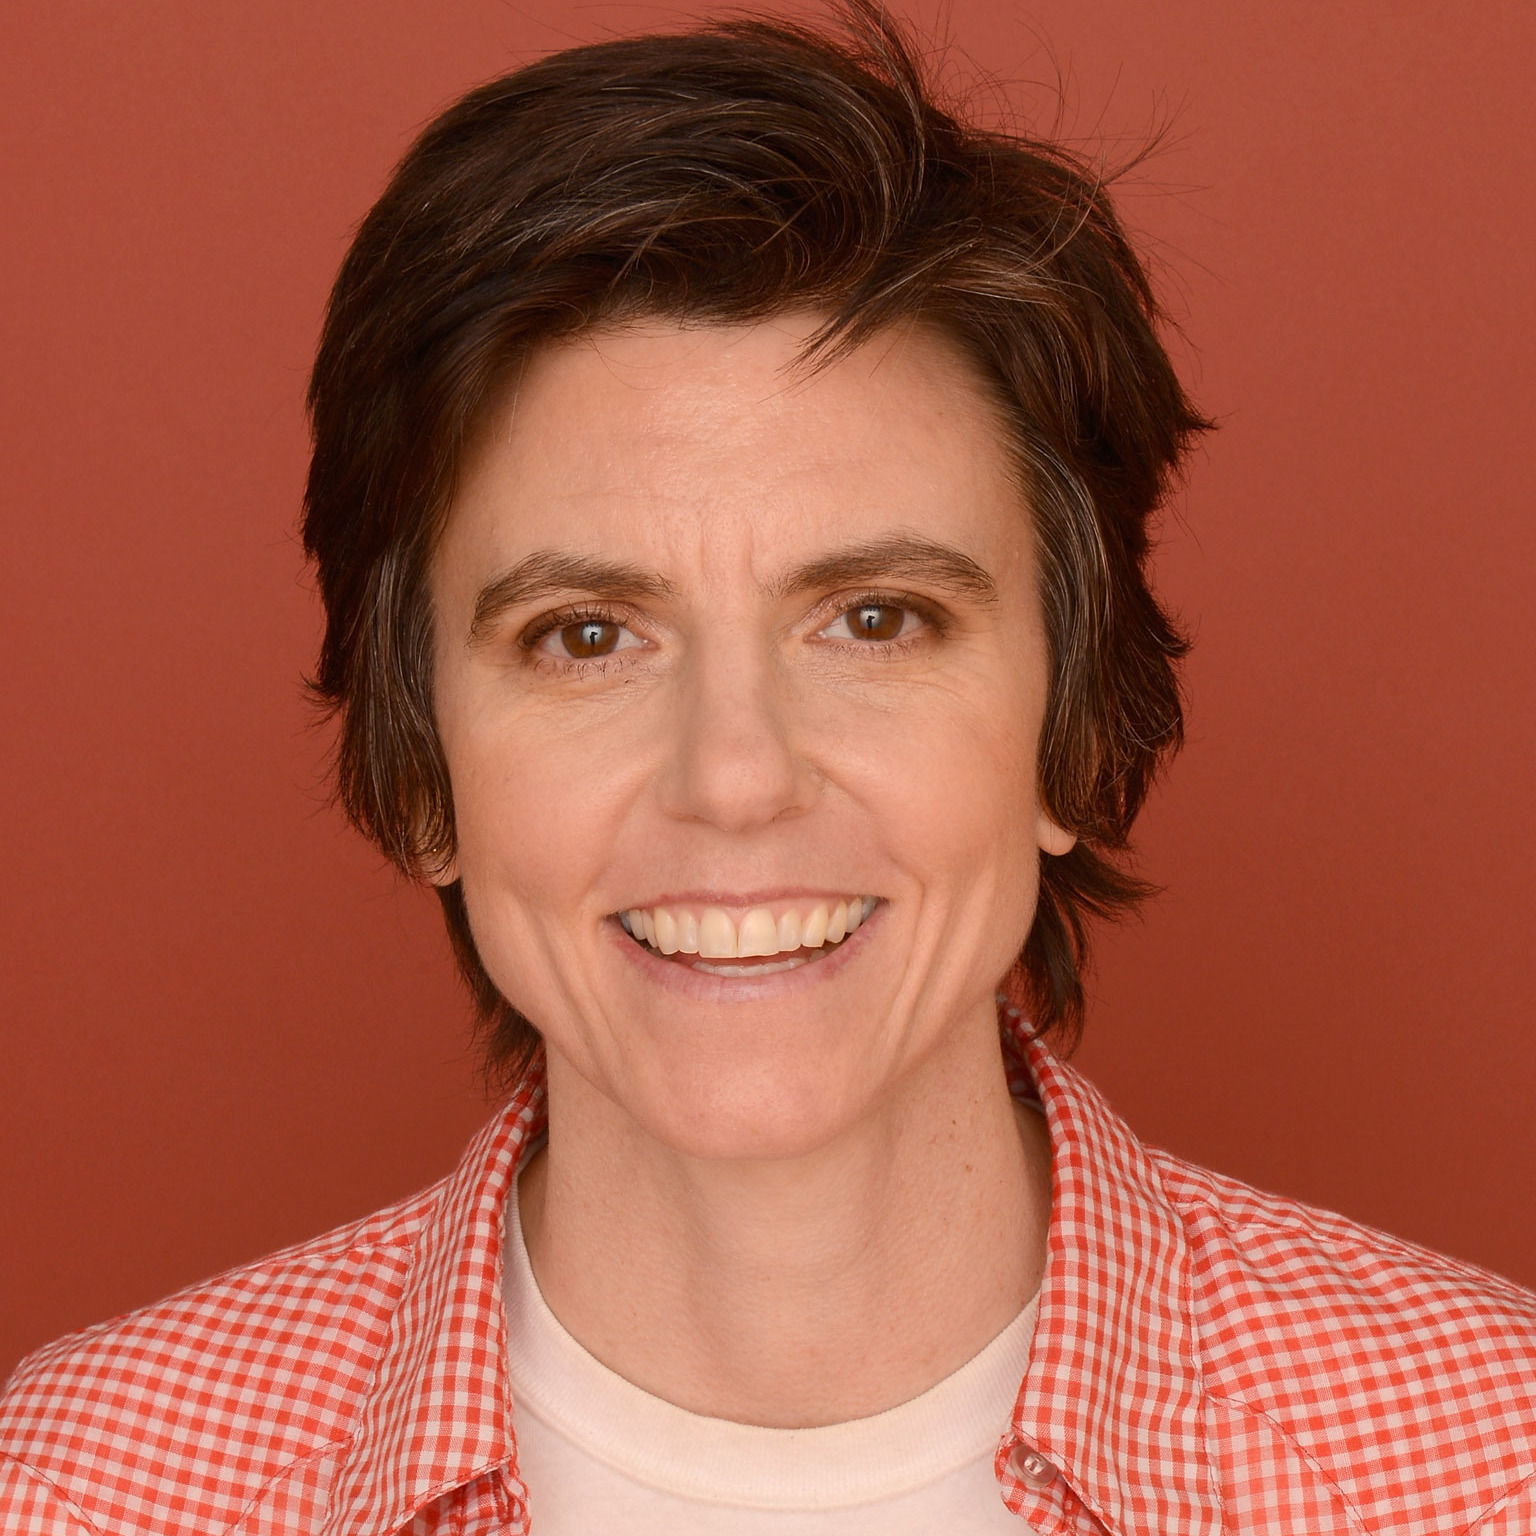 Tig Notaro poses for a portrait during the 2013 Sundance Film Festival on Jan. 20 in Park City, Utah.